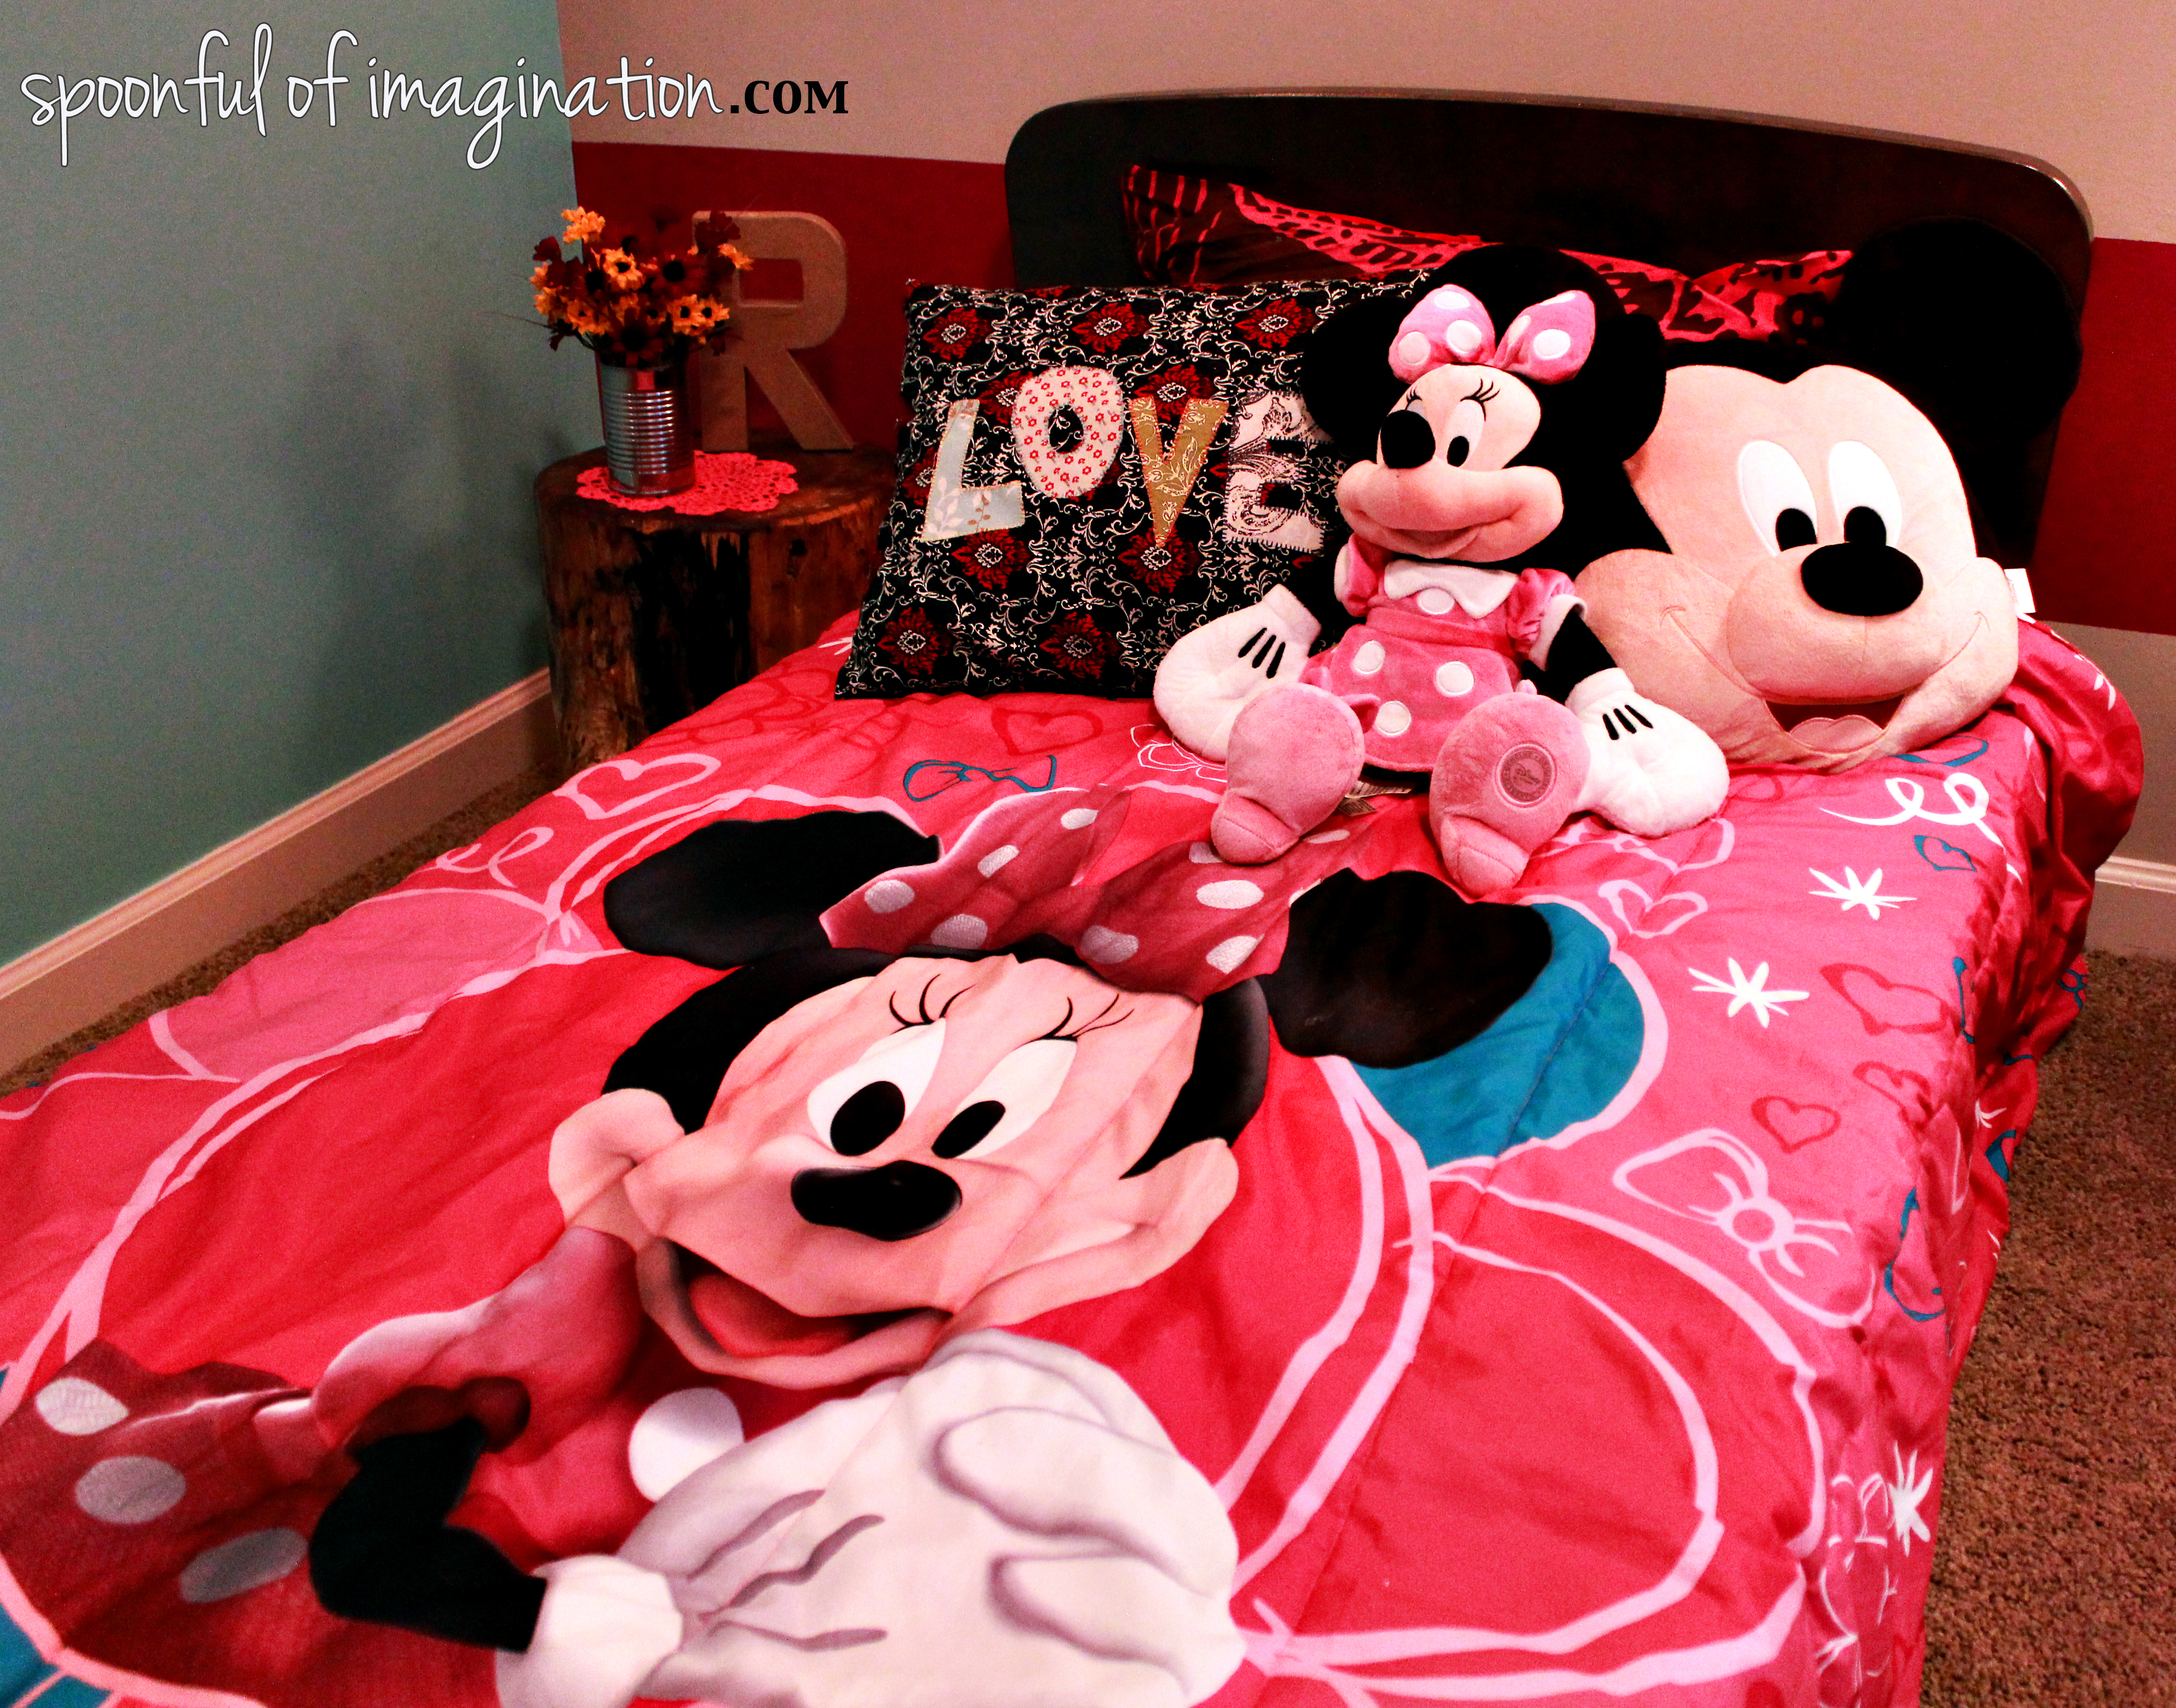 Pink Minnie Mouse Bedroom Decor Minnie Mouse Bed Spoonful Of Imagination